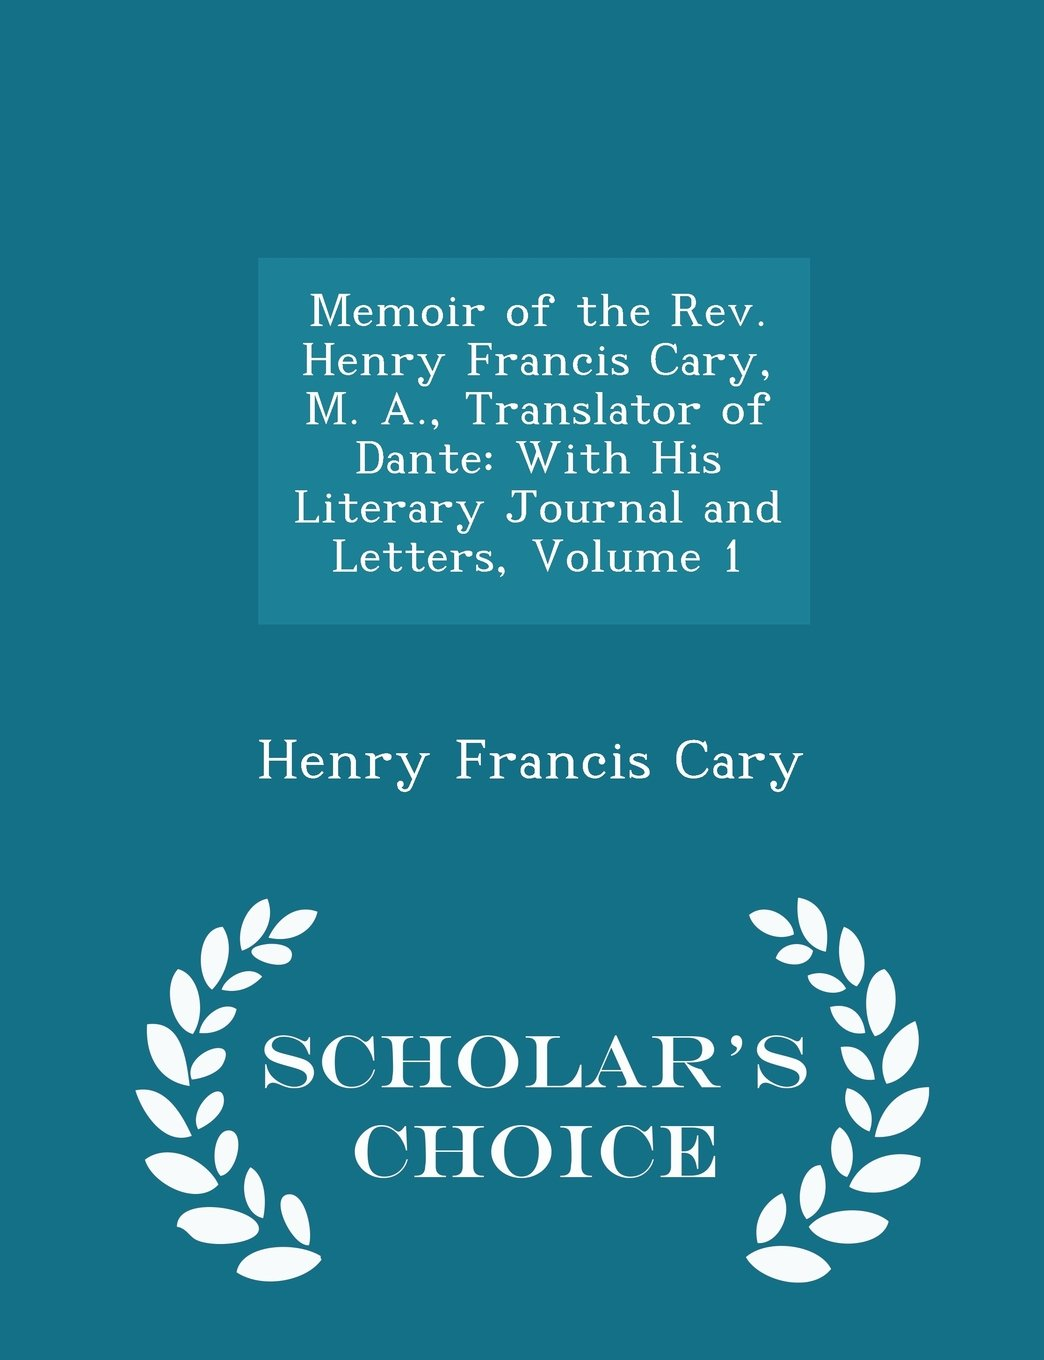 Download Memoir of the Rev. Henry Francis Cary, M. A., Translator of Dante: With His Literary Journal and Letters, Volume 1 - Scholar's Choice Edition ebook